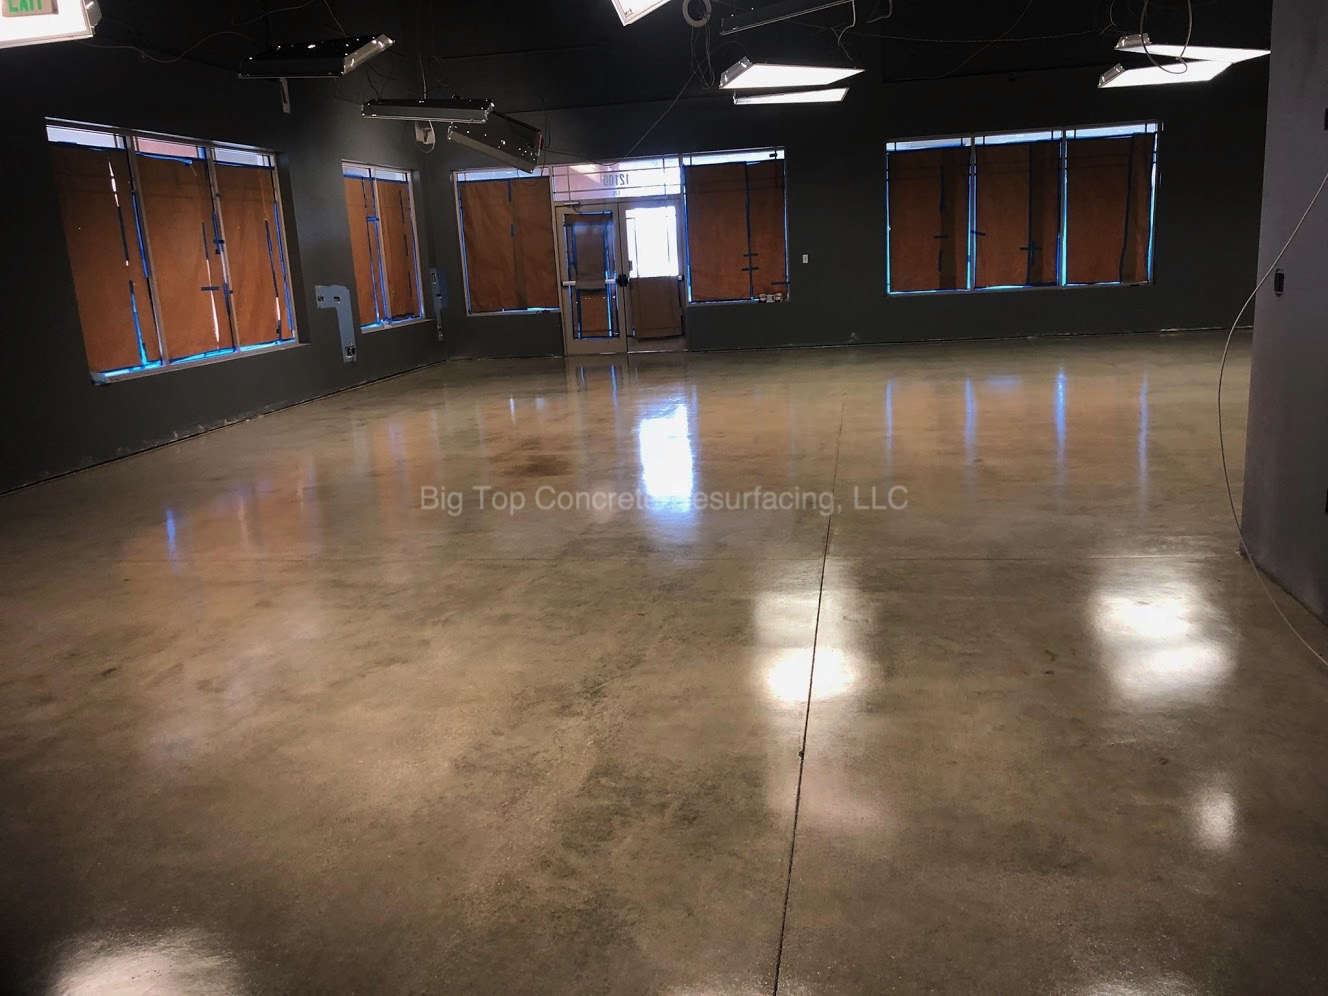 Concrete Sealing and Grinding